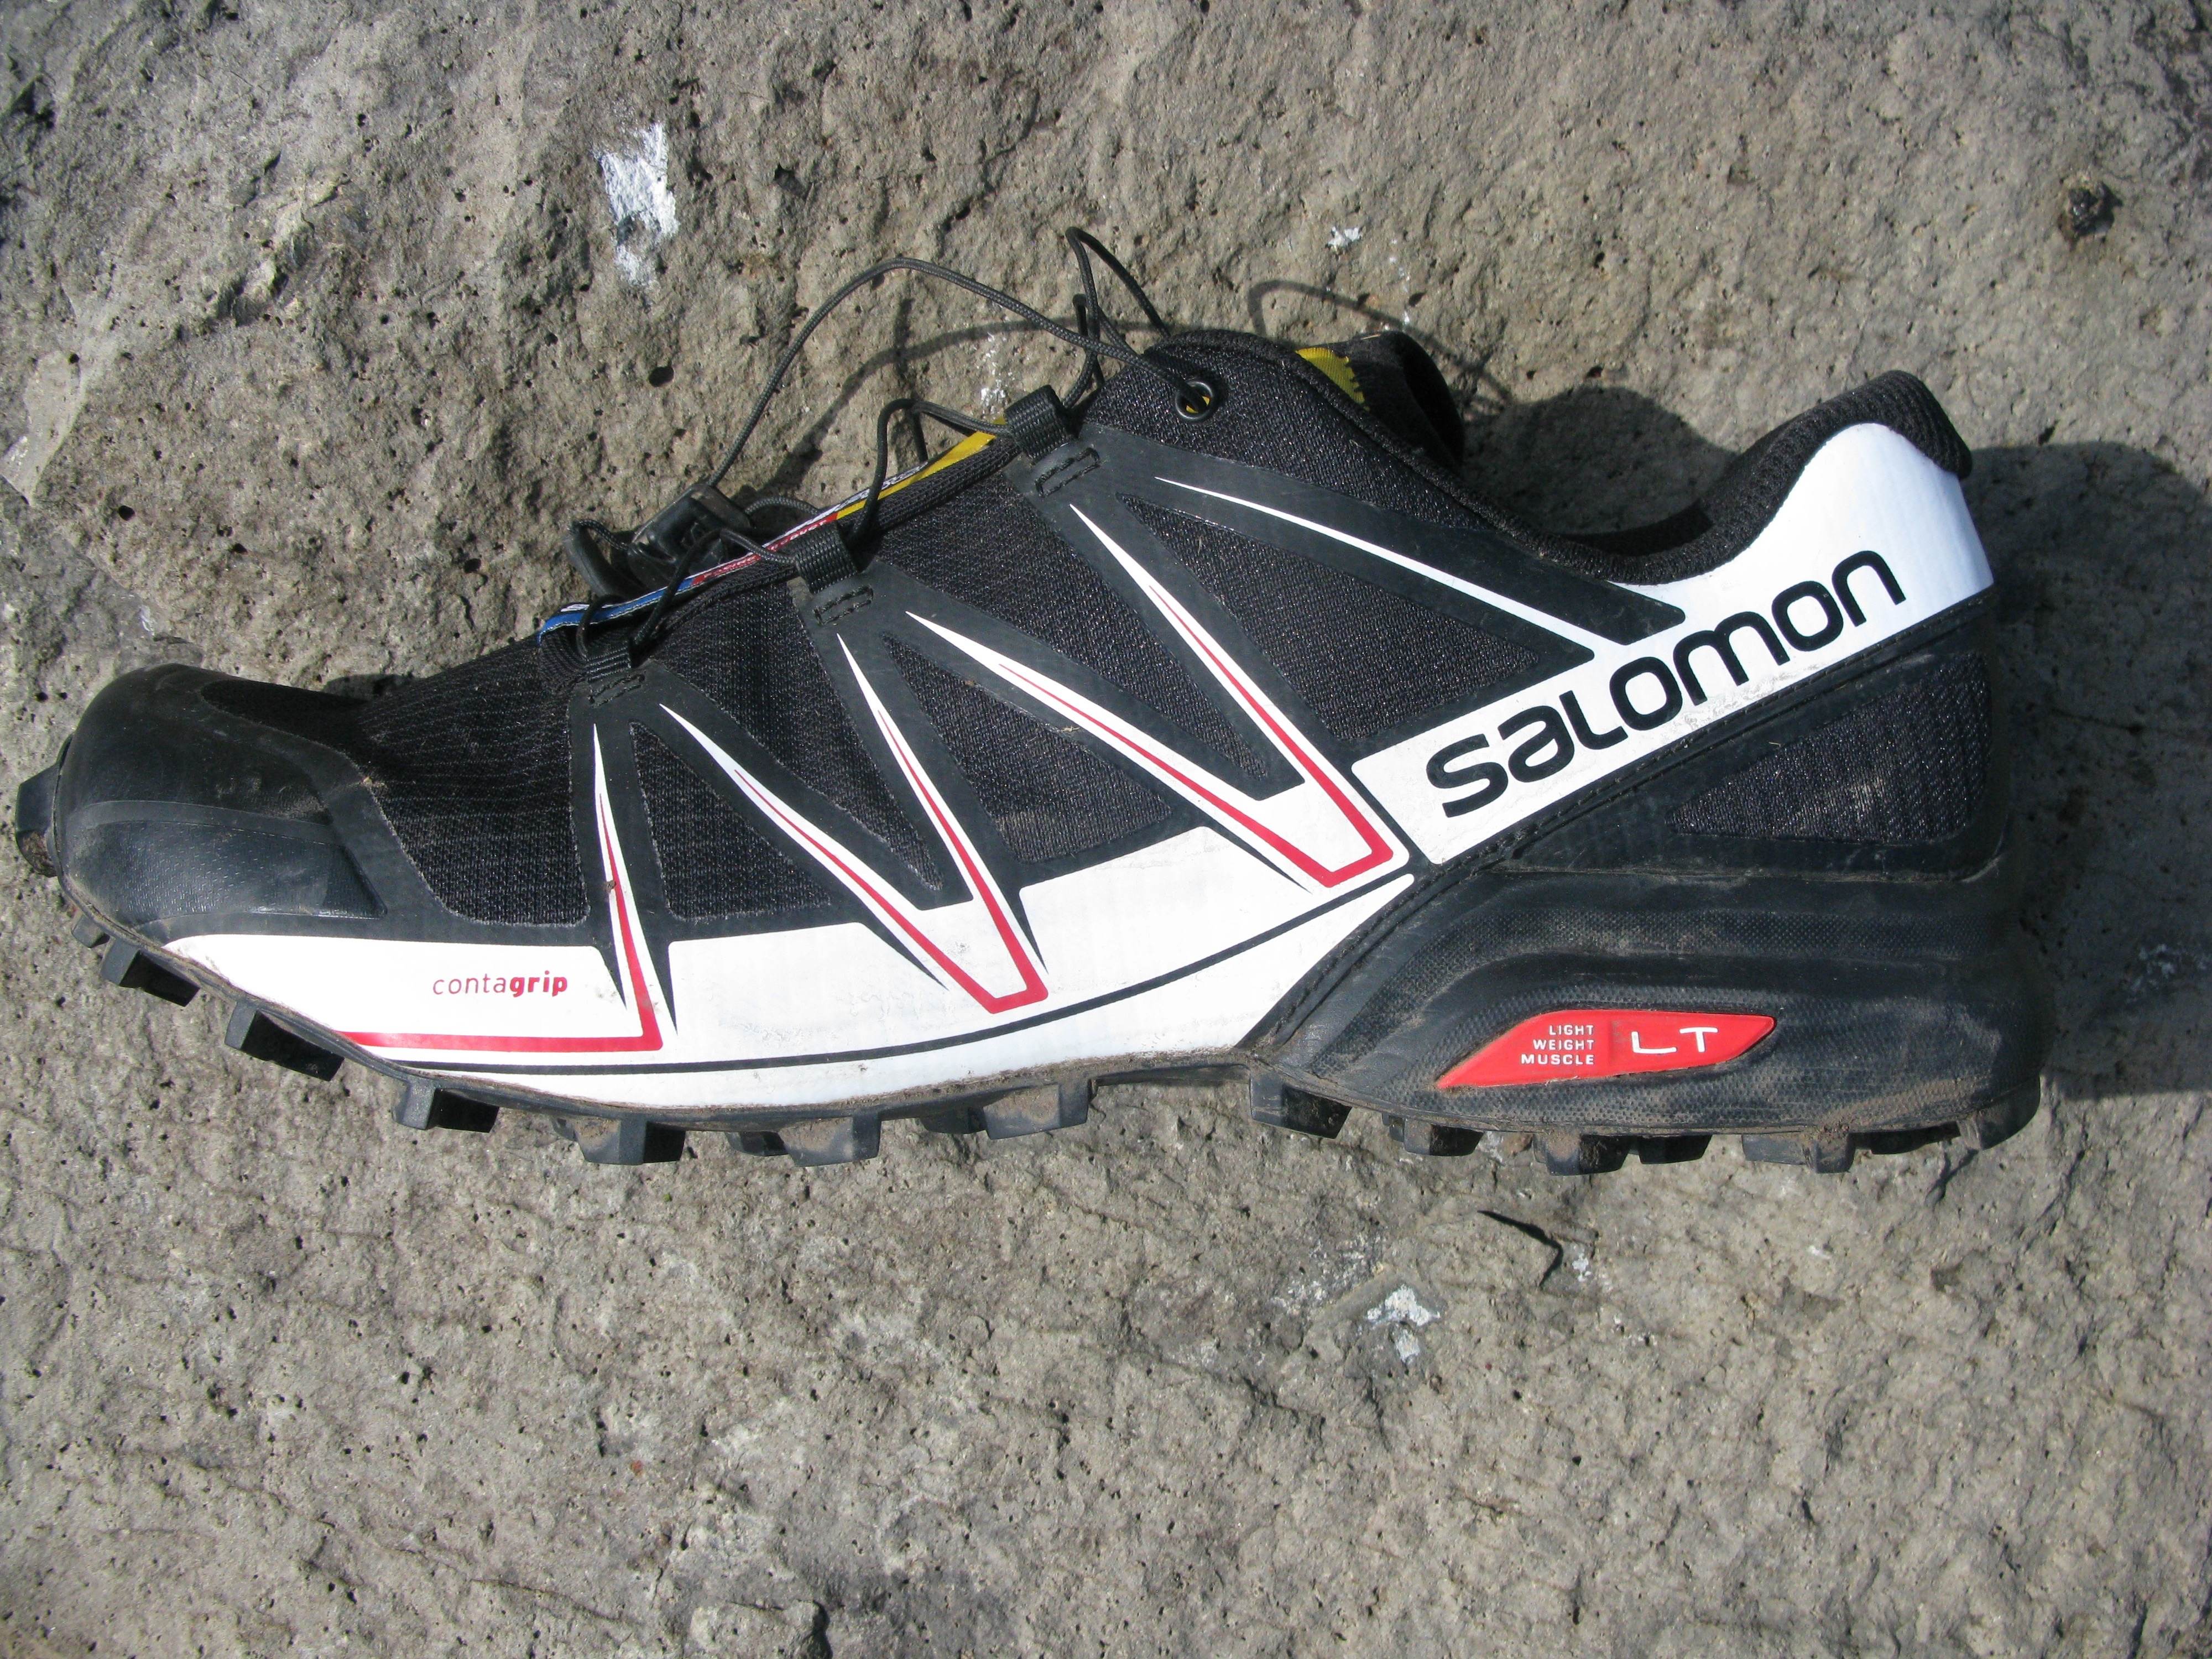 Salomon Shoe Laces Are Too Long